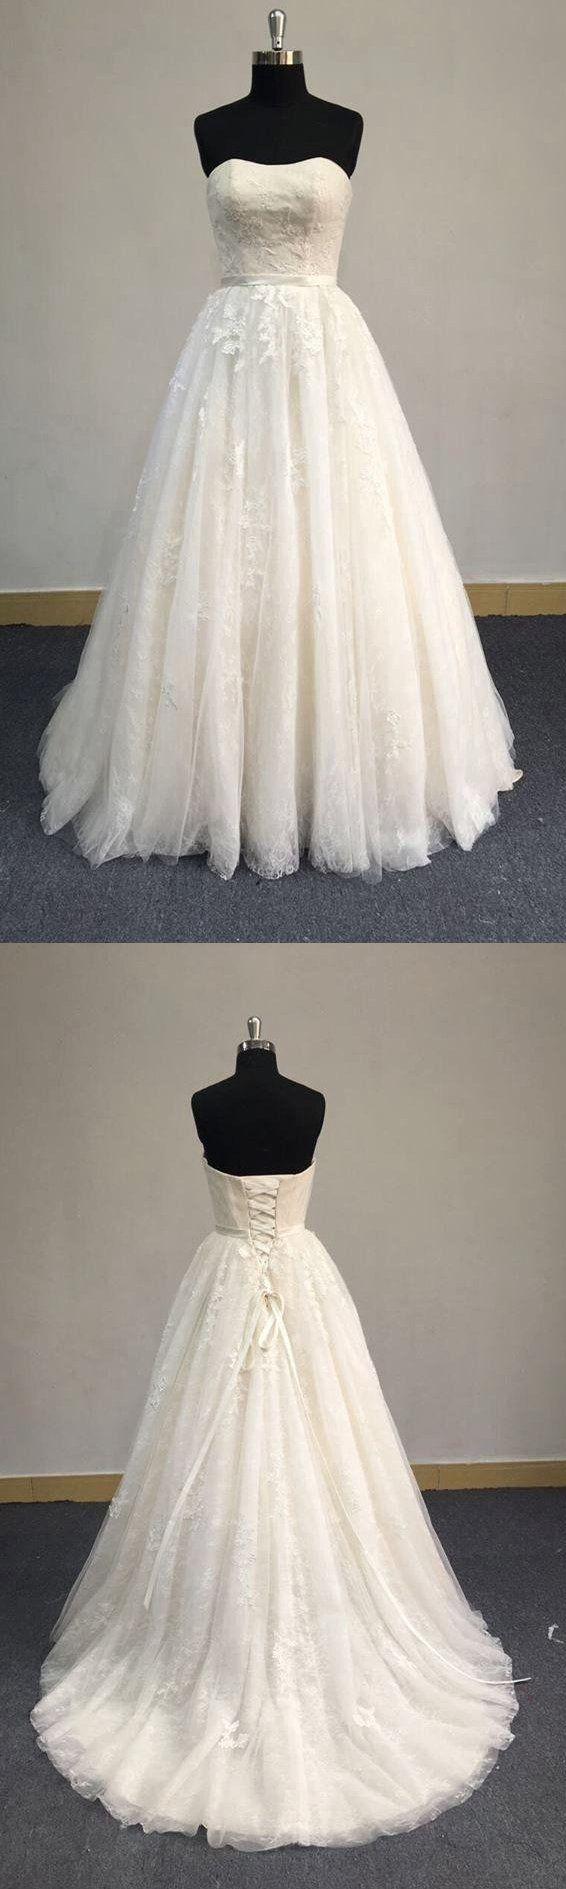 Strapless A-Line Tulle Wedding Dress With Lace Bodice-ET_711424